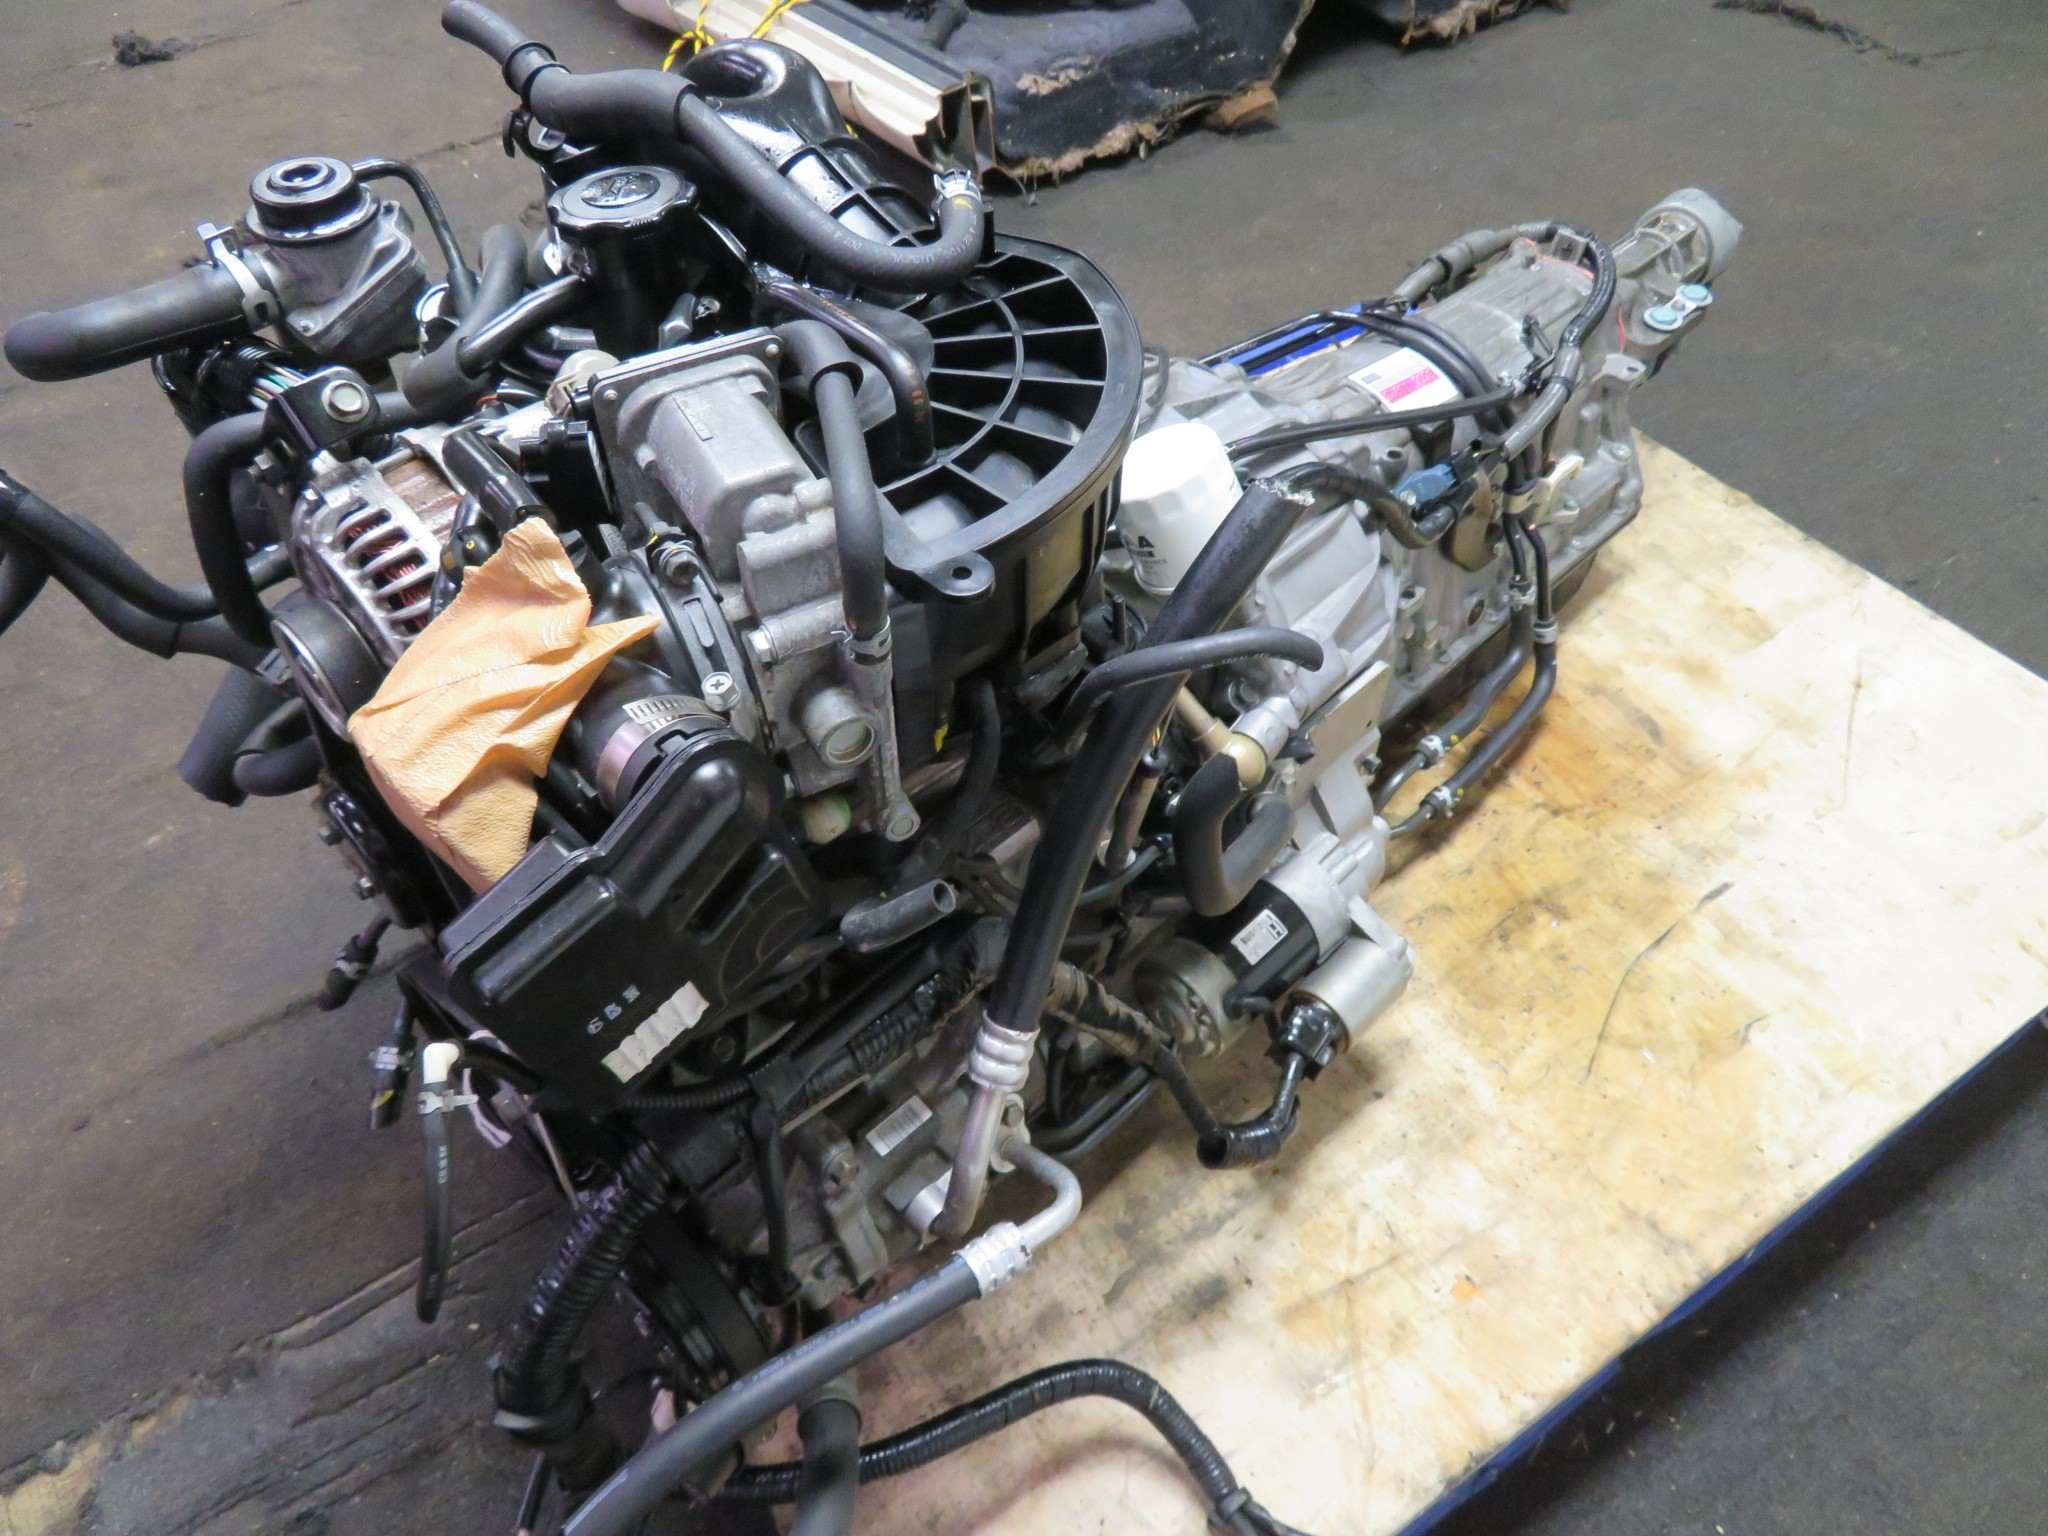 03-08 JDM MAZDA RX8 13B ROTARY 4 PORT ENGINE, AUTOMATIC TRANSMISSION, WIRING HARNESS, ECU